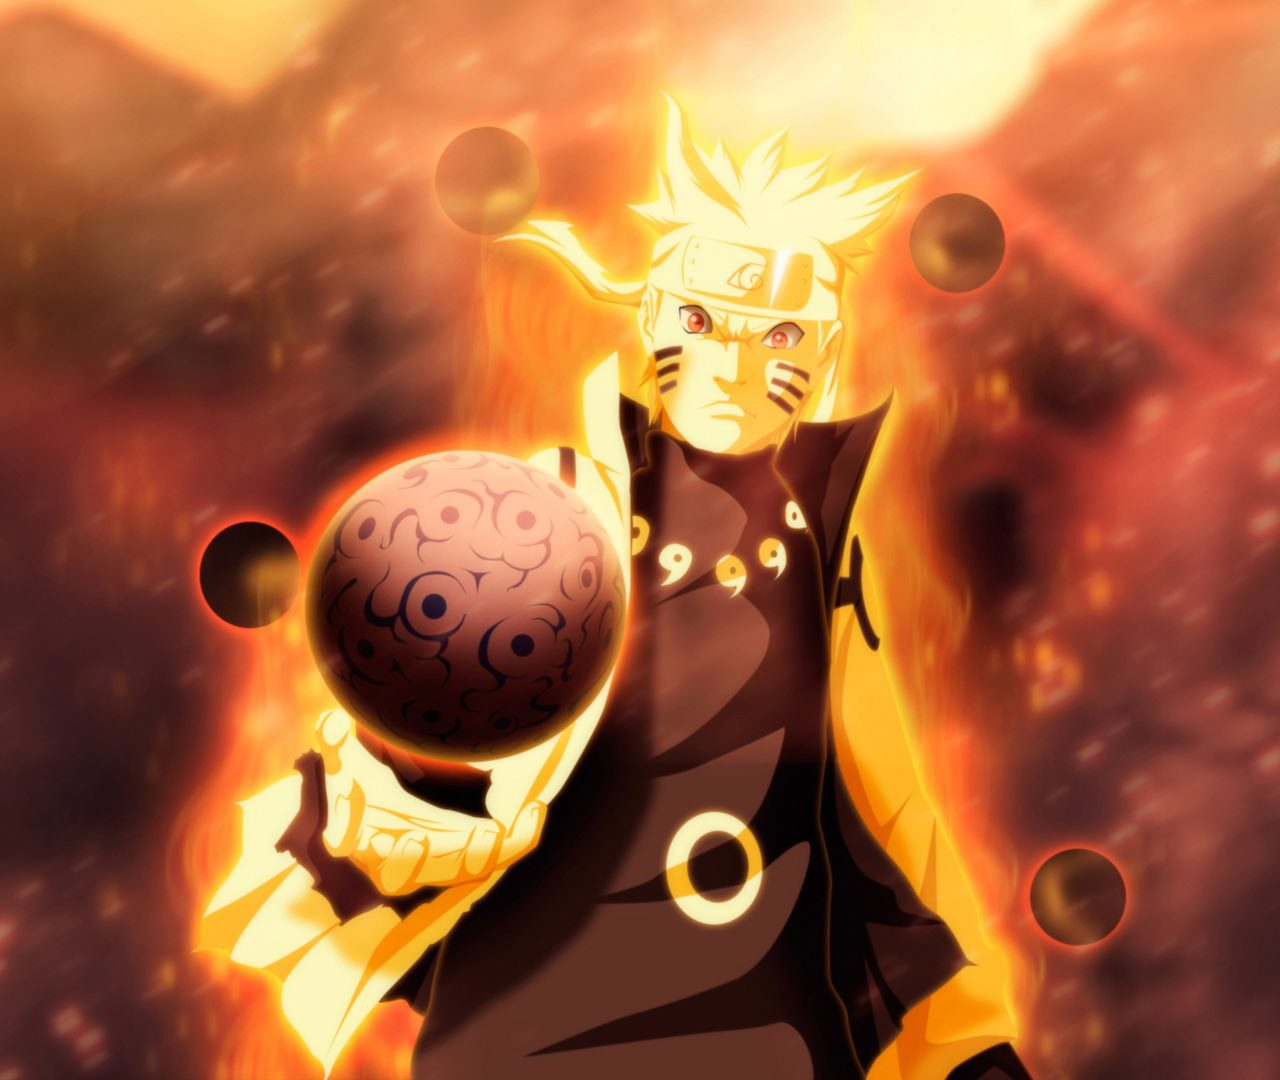 Rinnegan Holding A Small Planet Naruto Wallpaper Hd Wallpapers Hd Backgrounds Tumblr Backgrounds Images Pictures